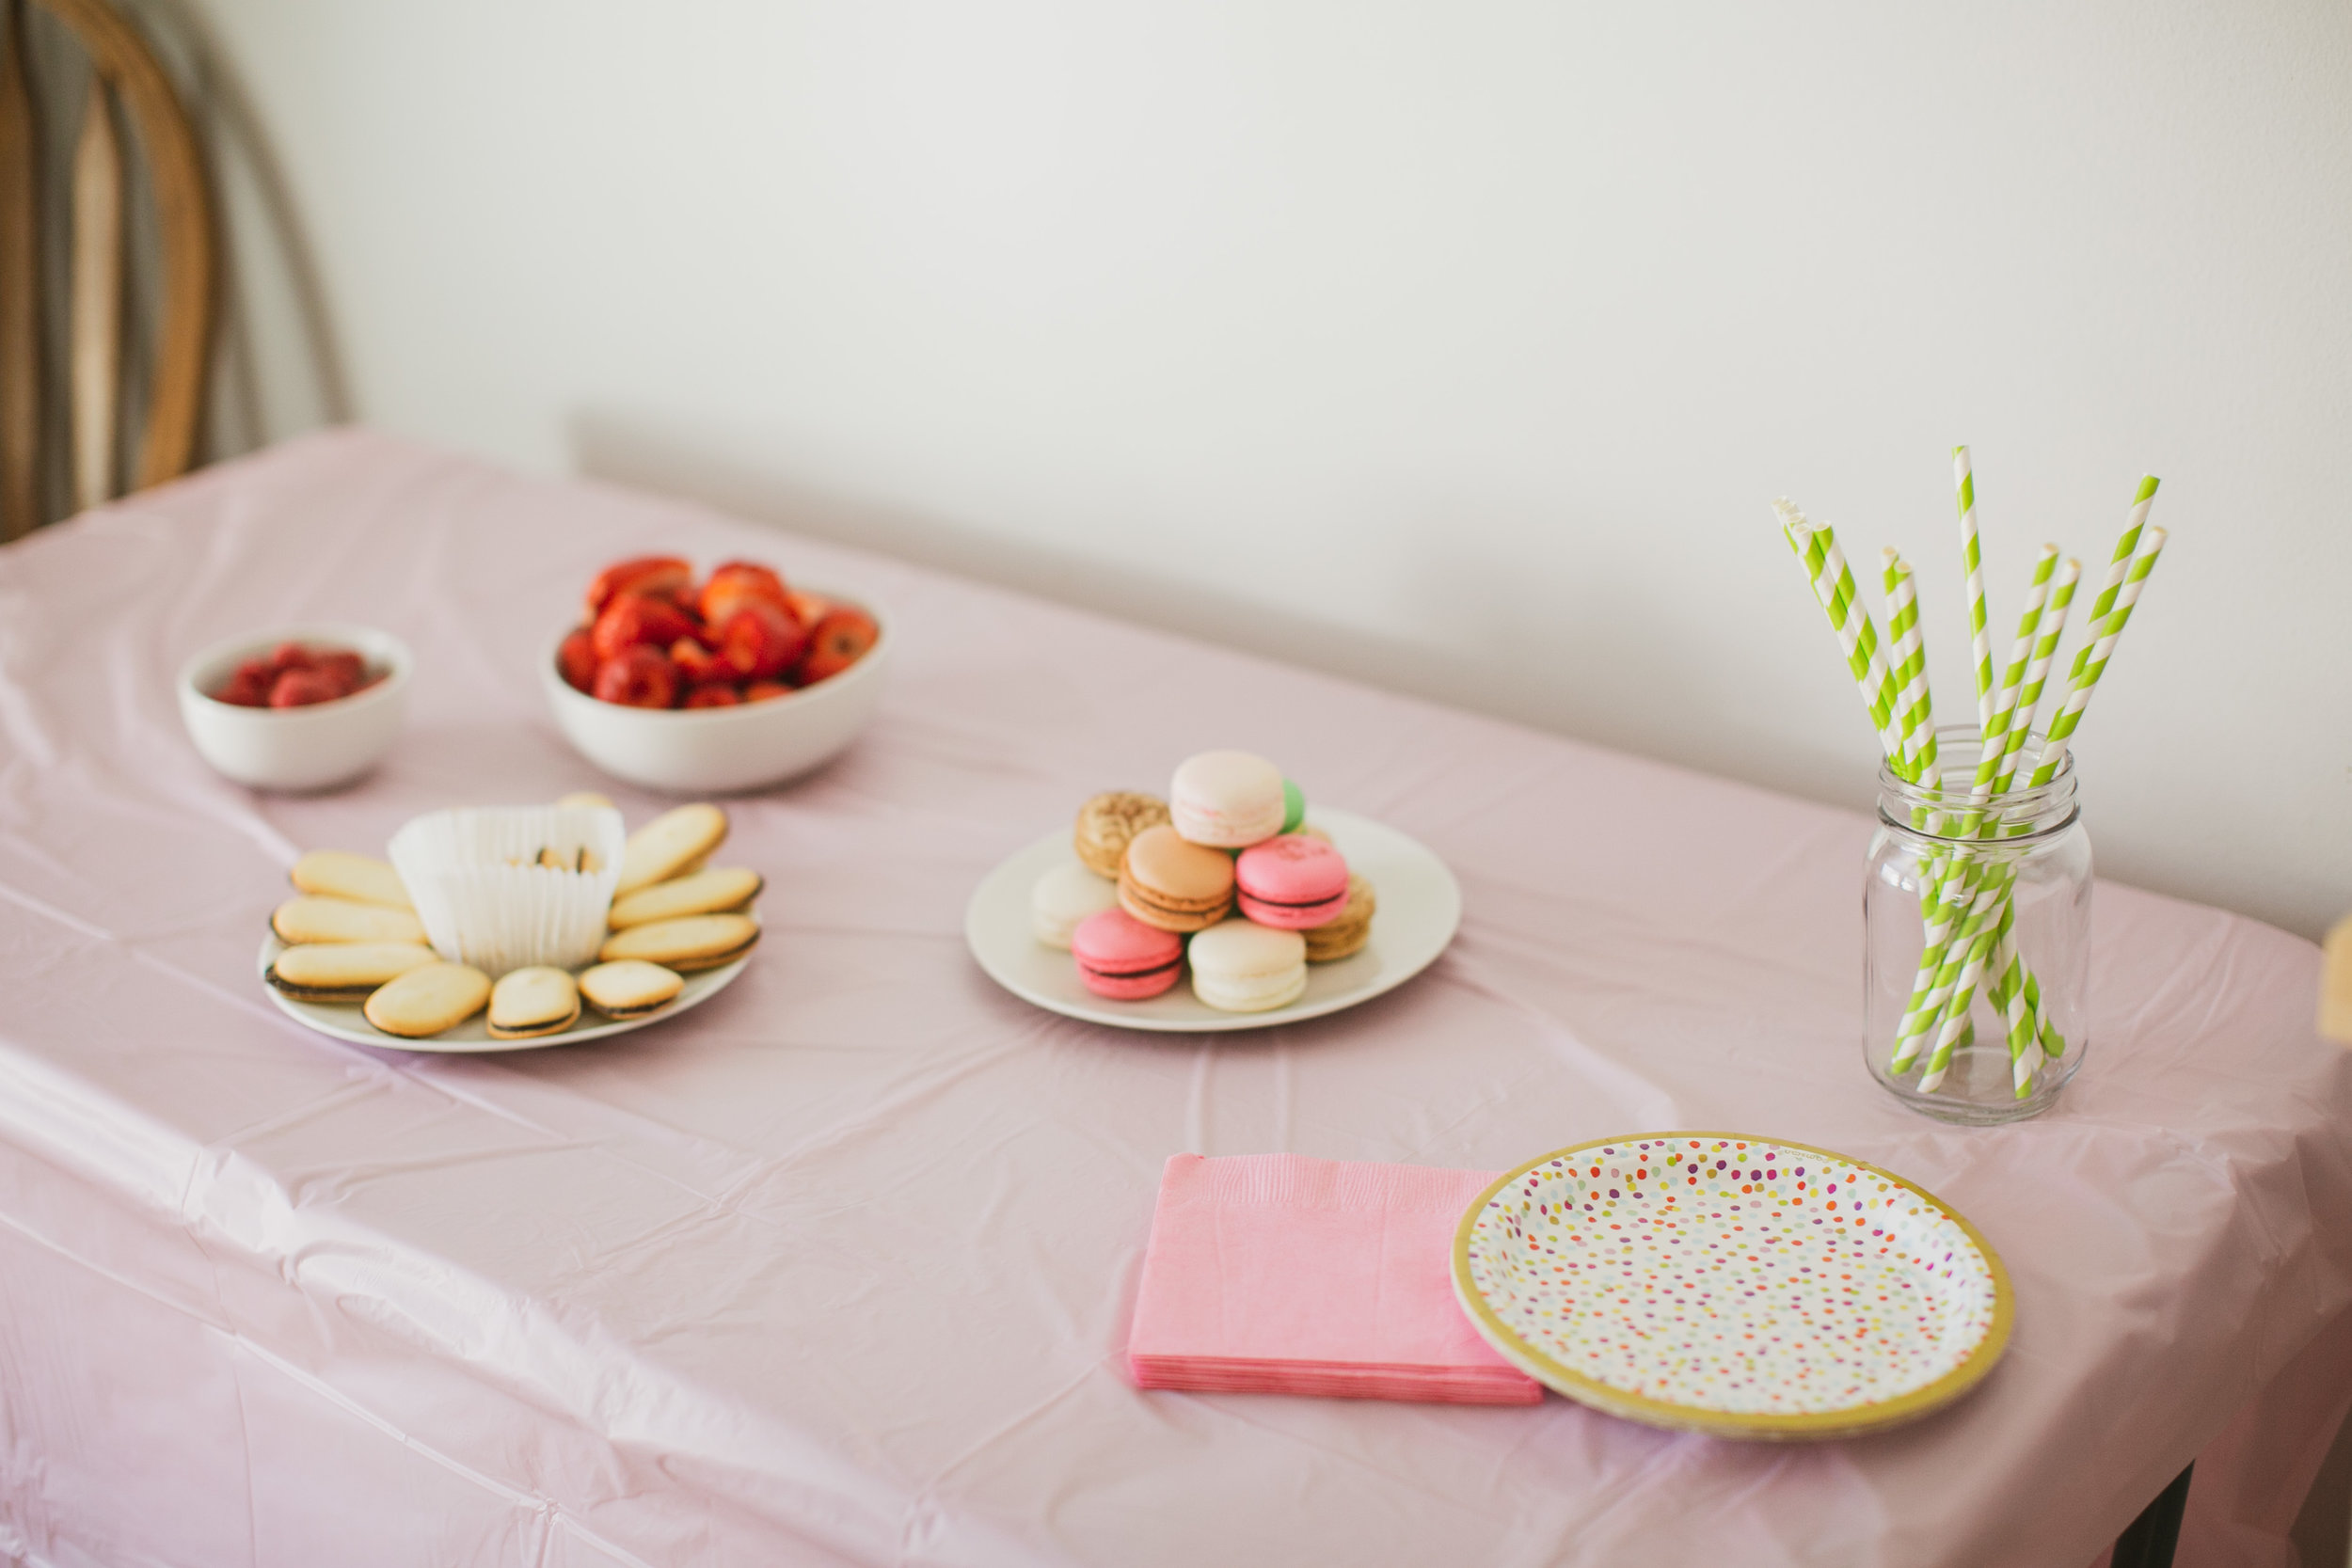 des moines macaroons and mimosas